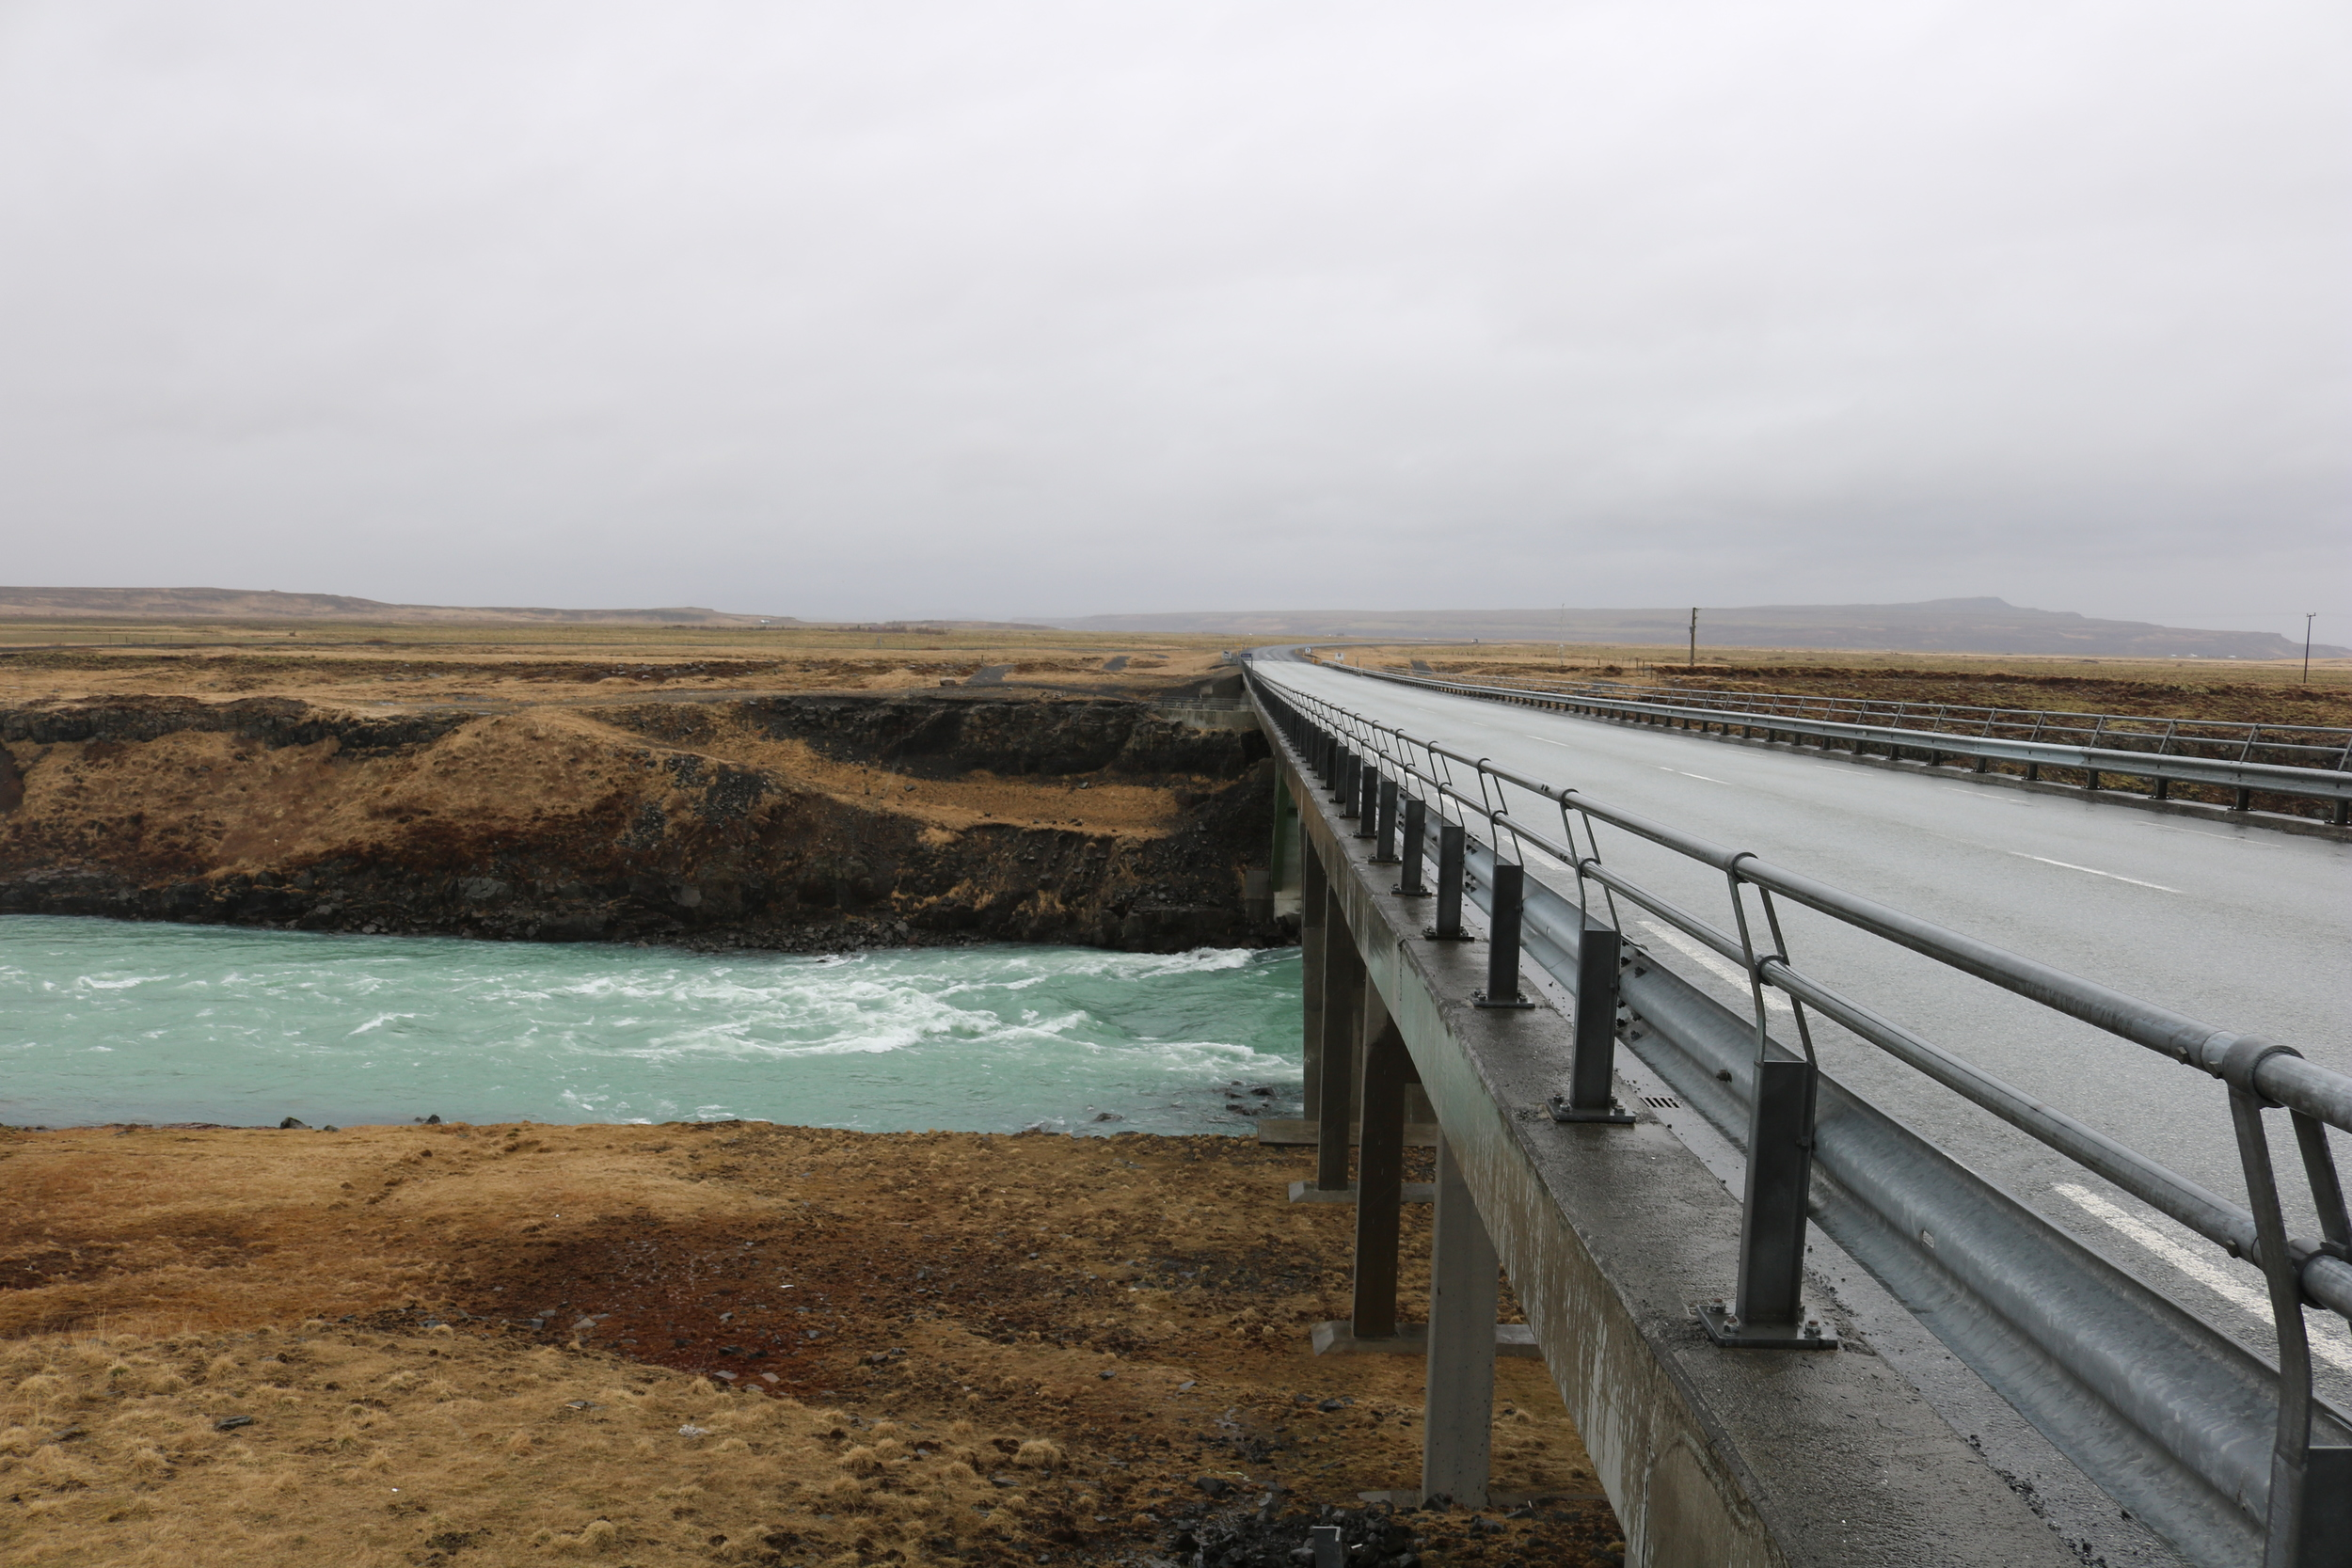 Iceland's scenery may be epic, but be sure to always stop off the road to take it all in.